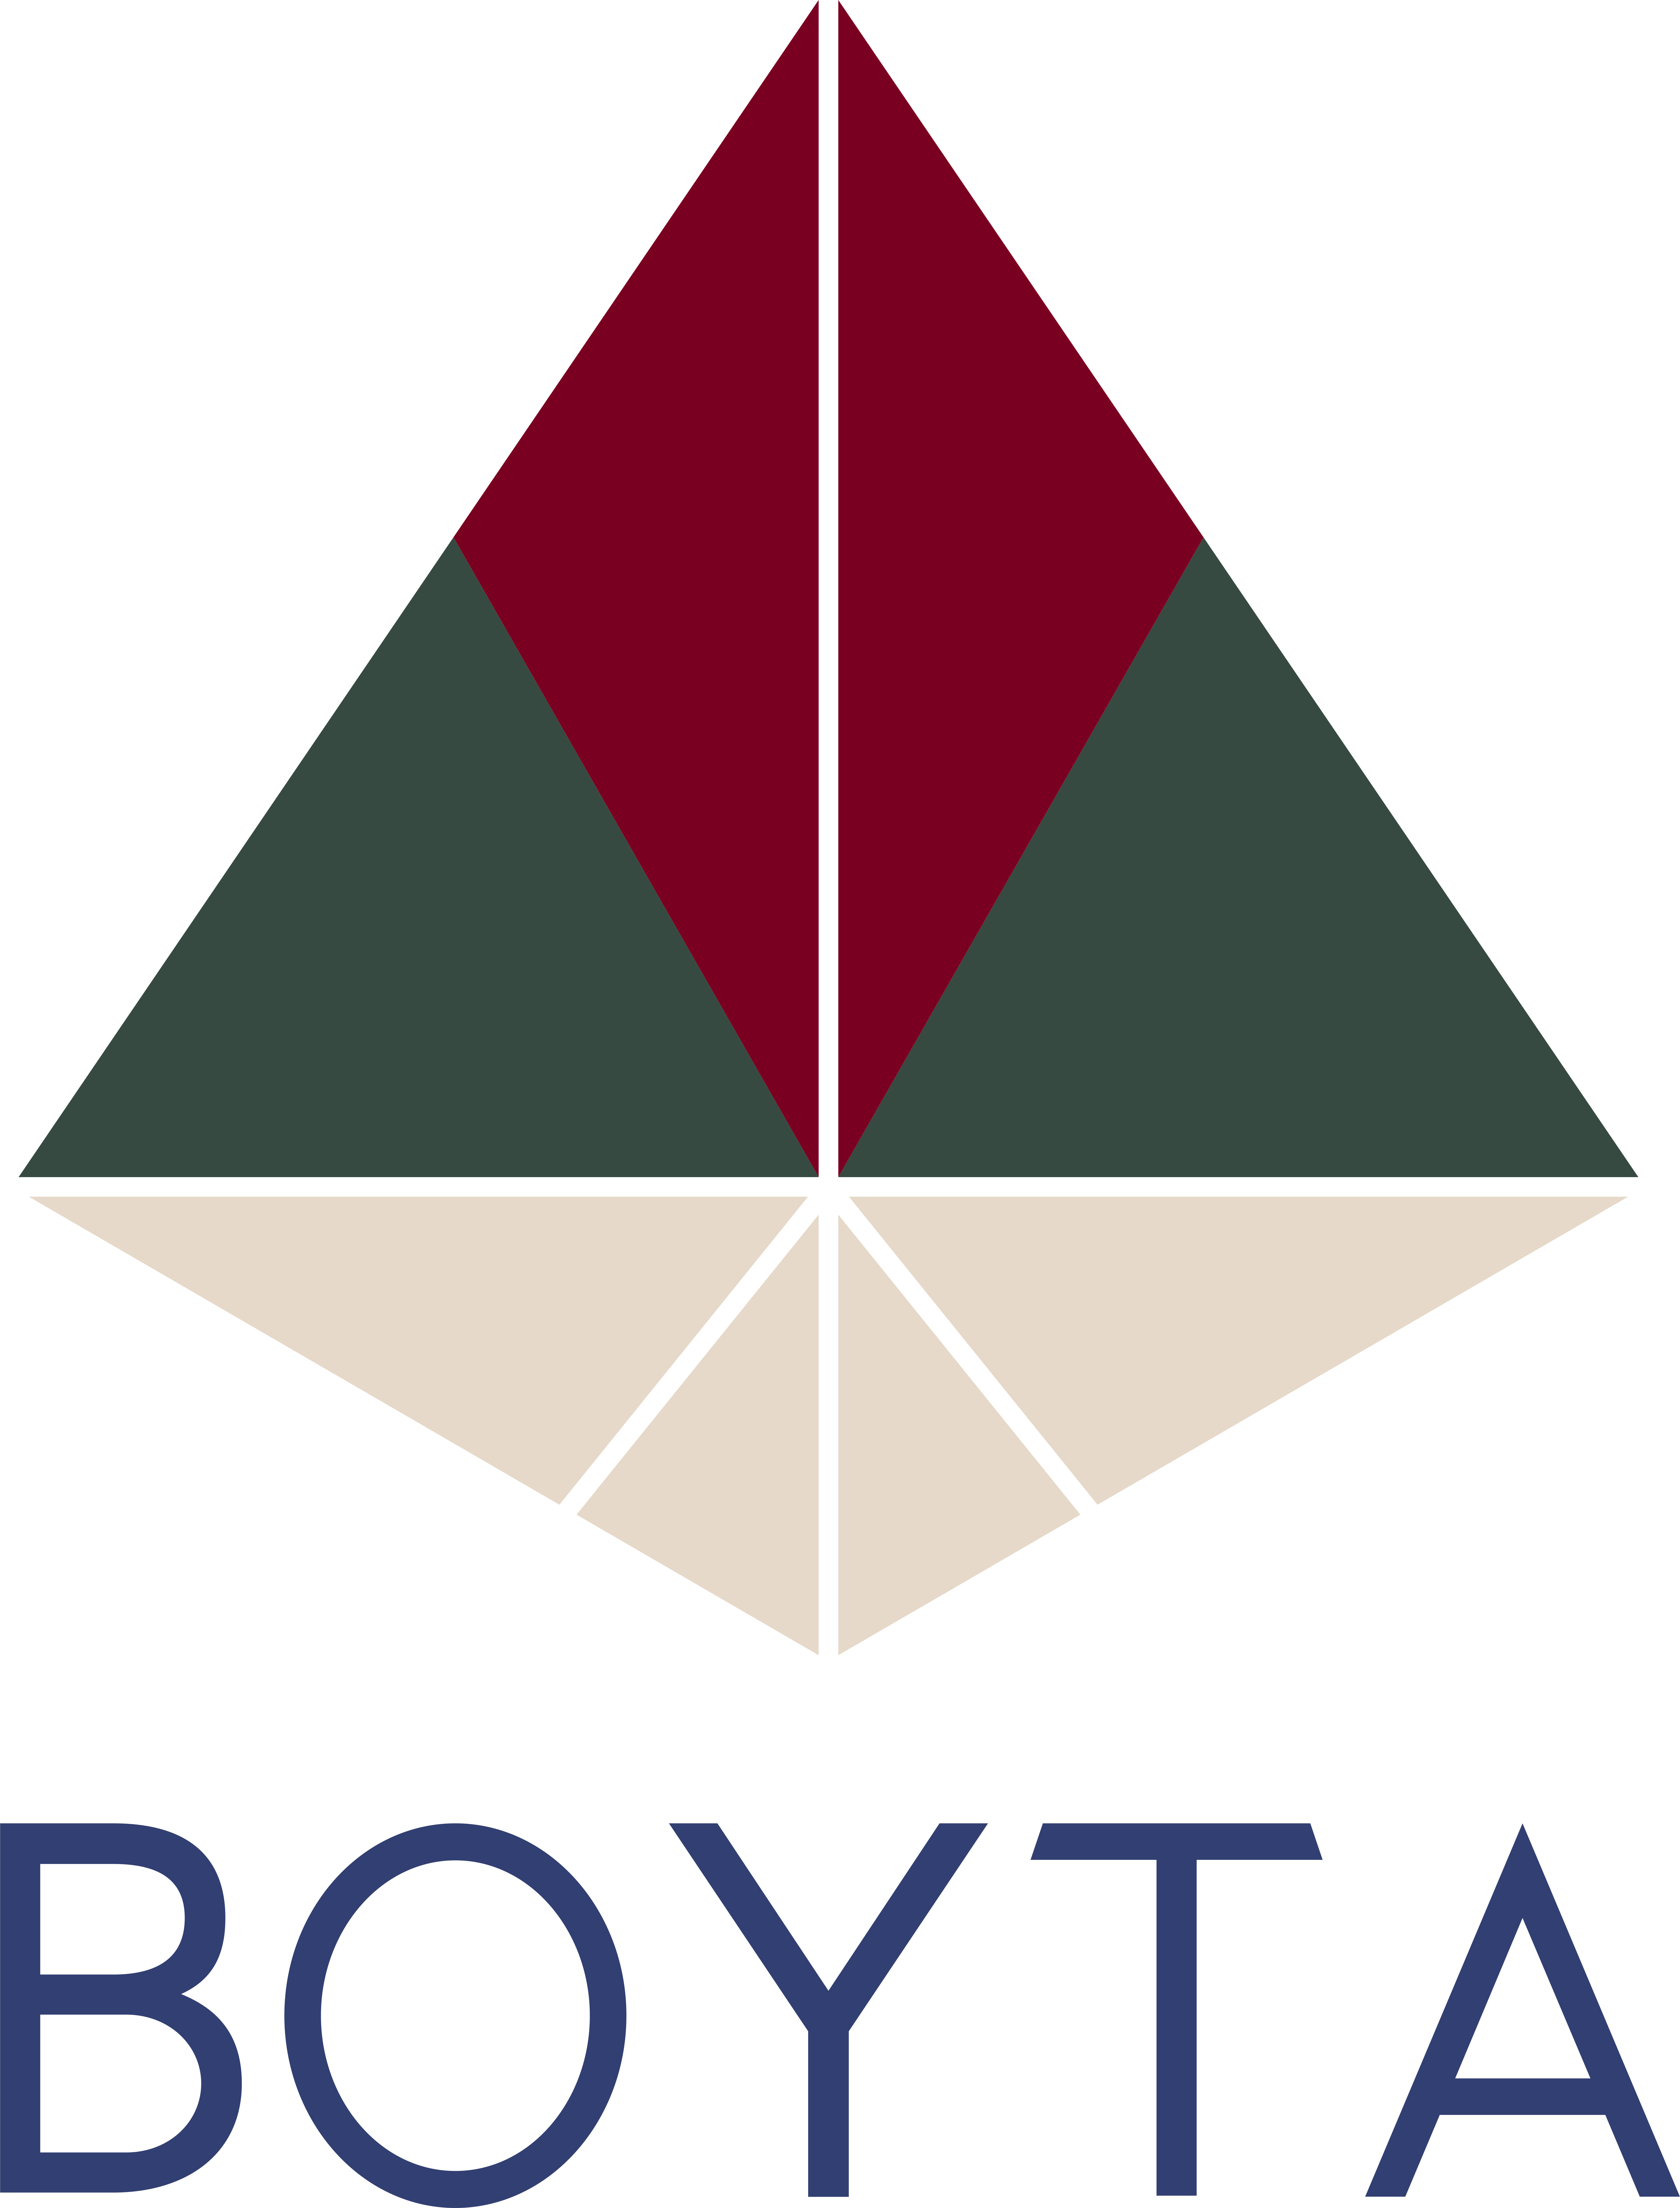 BOYTA Engineering Technologies Private Limited